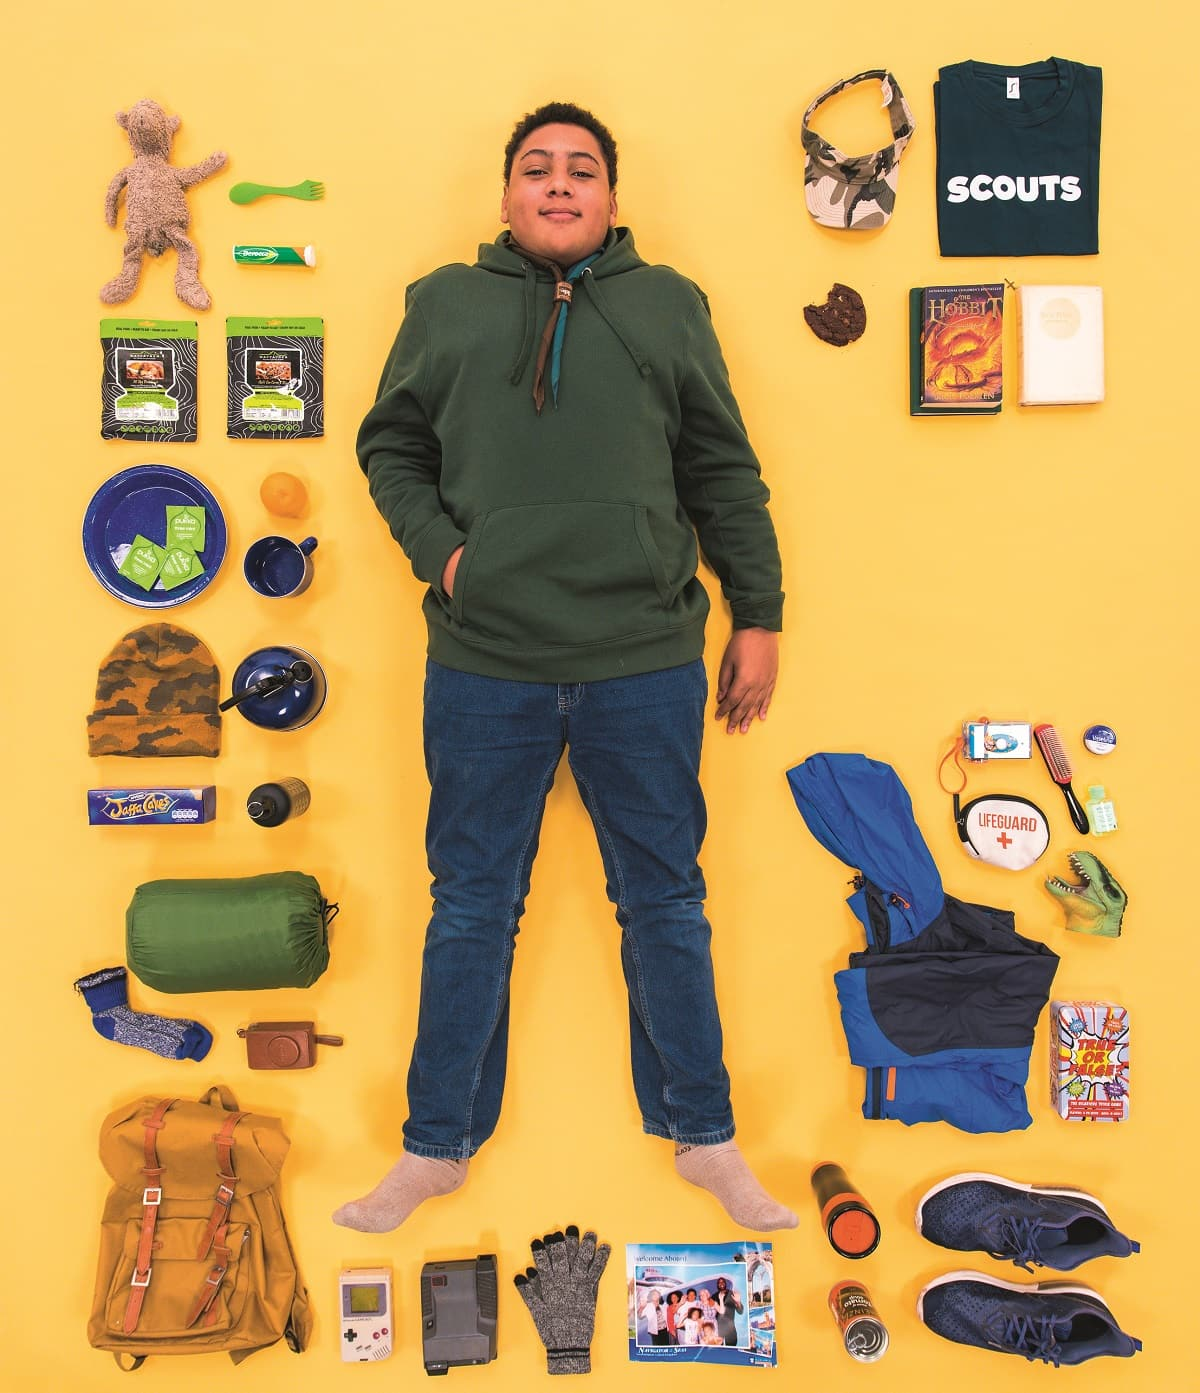 Ivie, a scout, with all of his favourite things he takes on camp